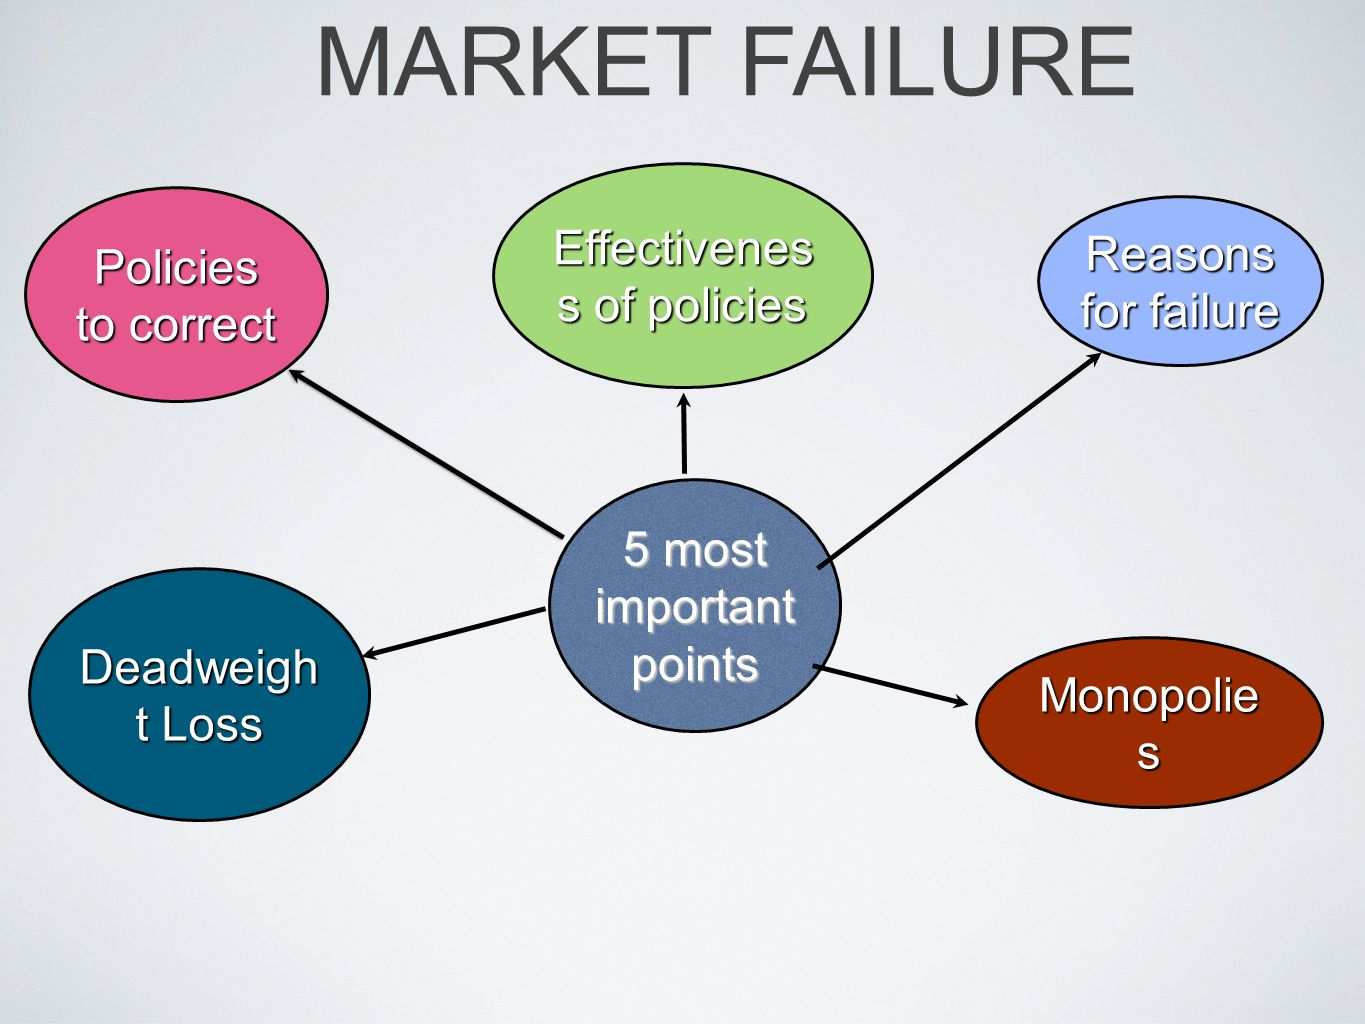 5 most important points Reasons for failure Policies to correct Monopolie s Deadweigh t Loss Effectivenes s of policies MARKET FAILURE